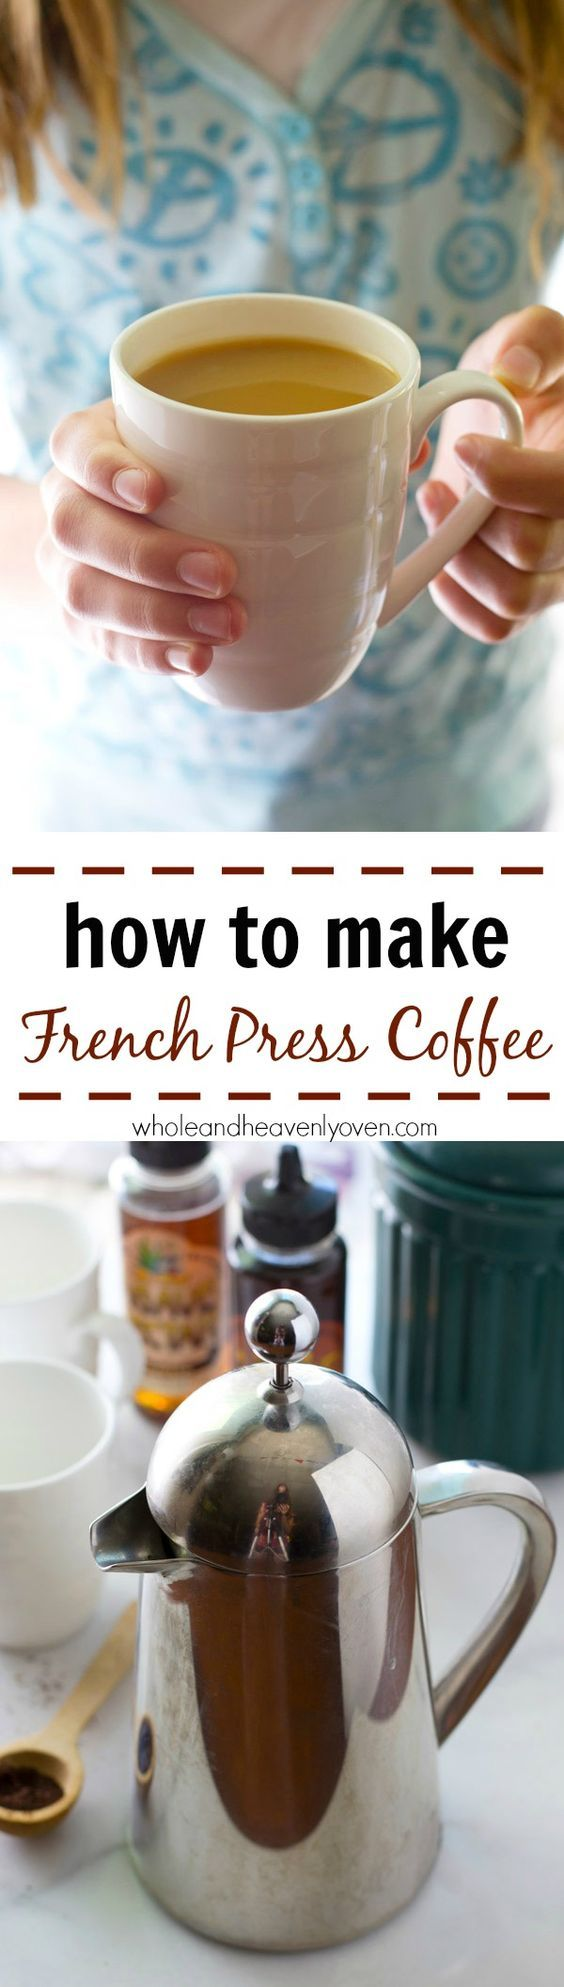 Once you learn how easy it is to make the perfect cup of french press coffee, you may never use your coffee maker again! Step-by-step photos included. @Sarah | Whole and Heavenly Oven